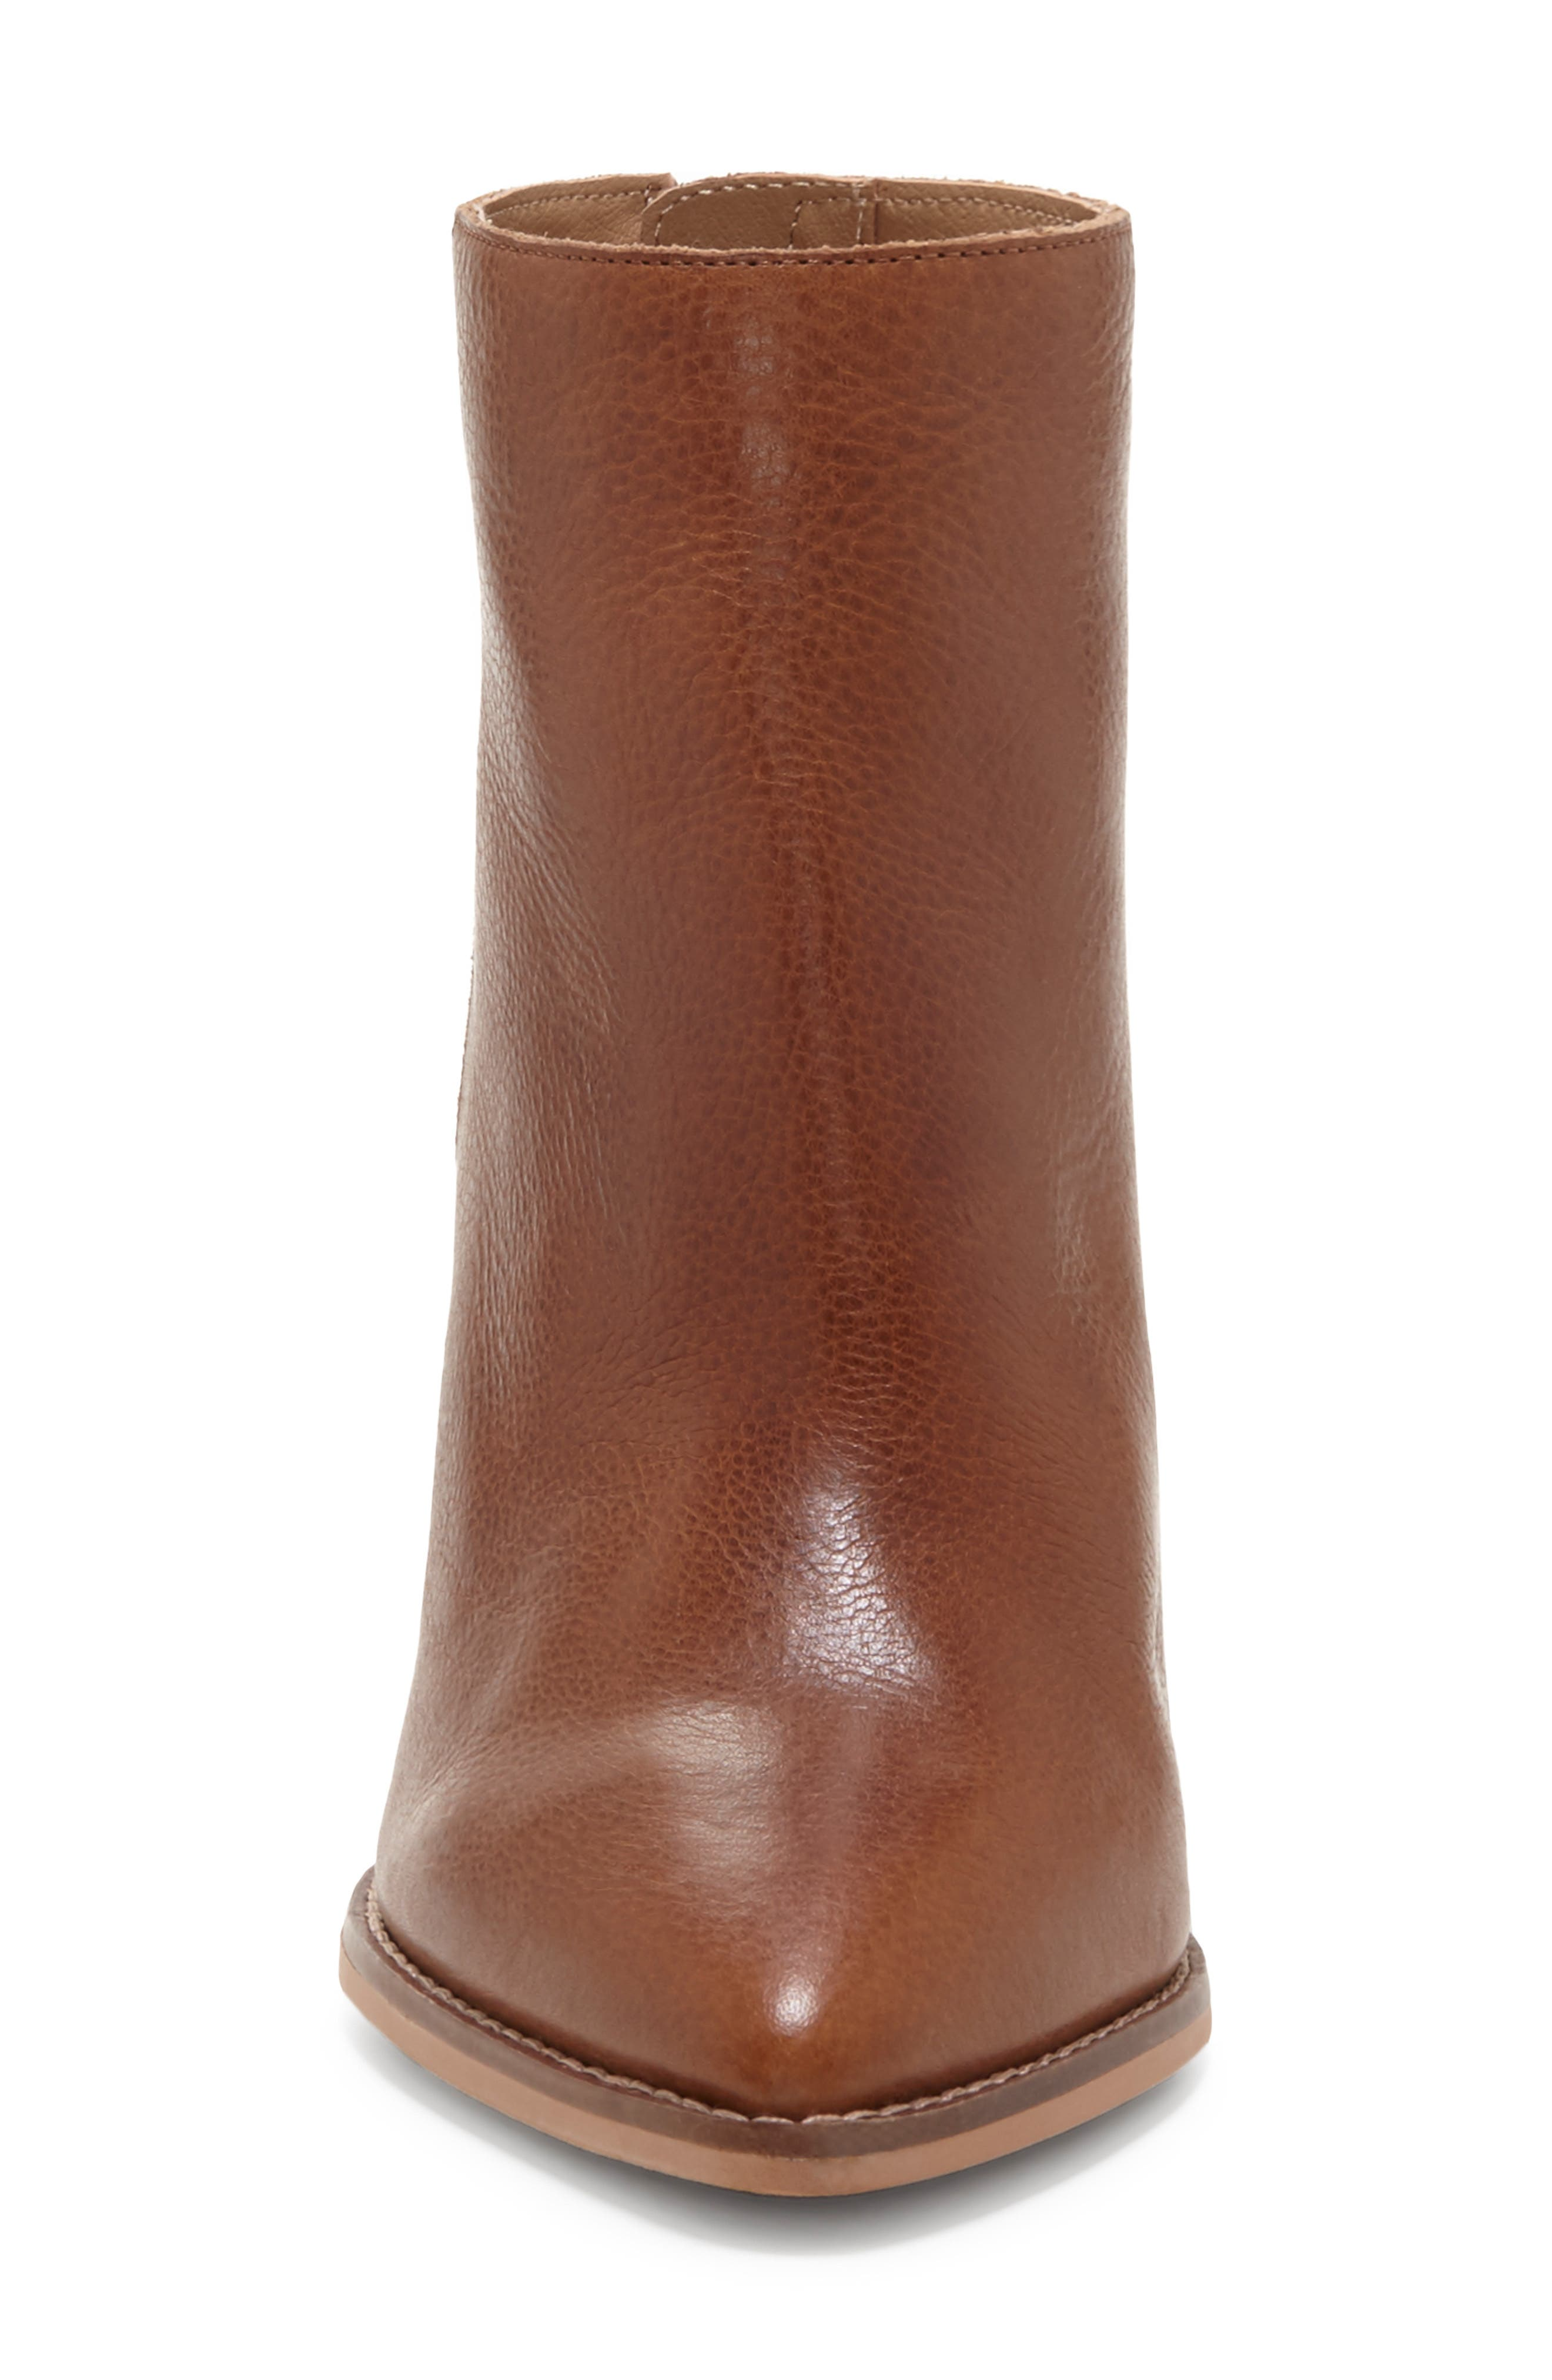 LUCKY BRAND, Adalan Bootie, Alternate thumbnail 4, color, MACAROON LEATHER